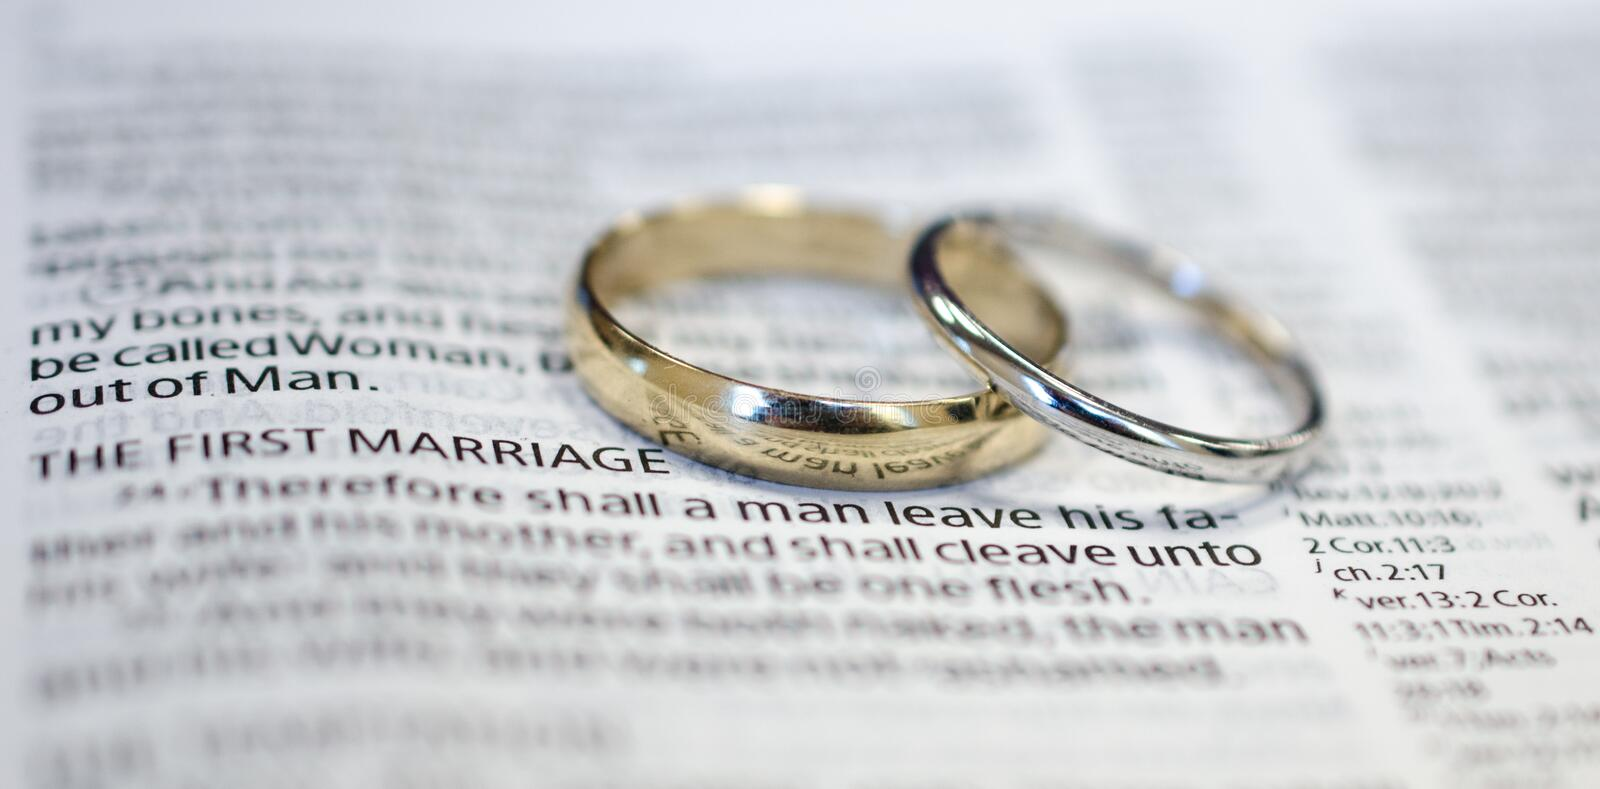 Wedding Rings On Bible Scripture Stock Image Image of leave